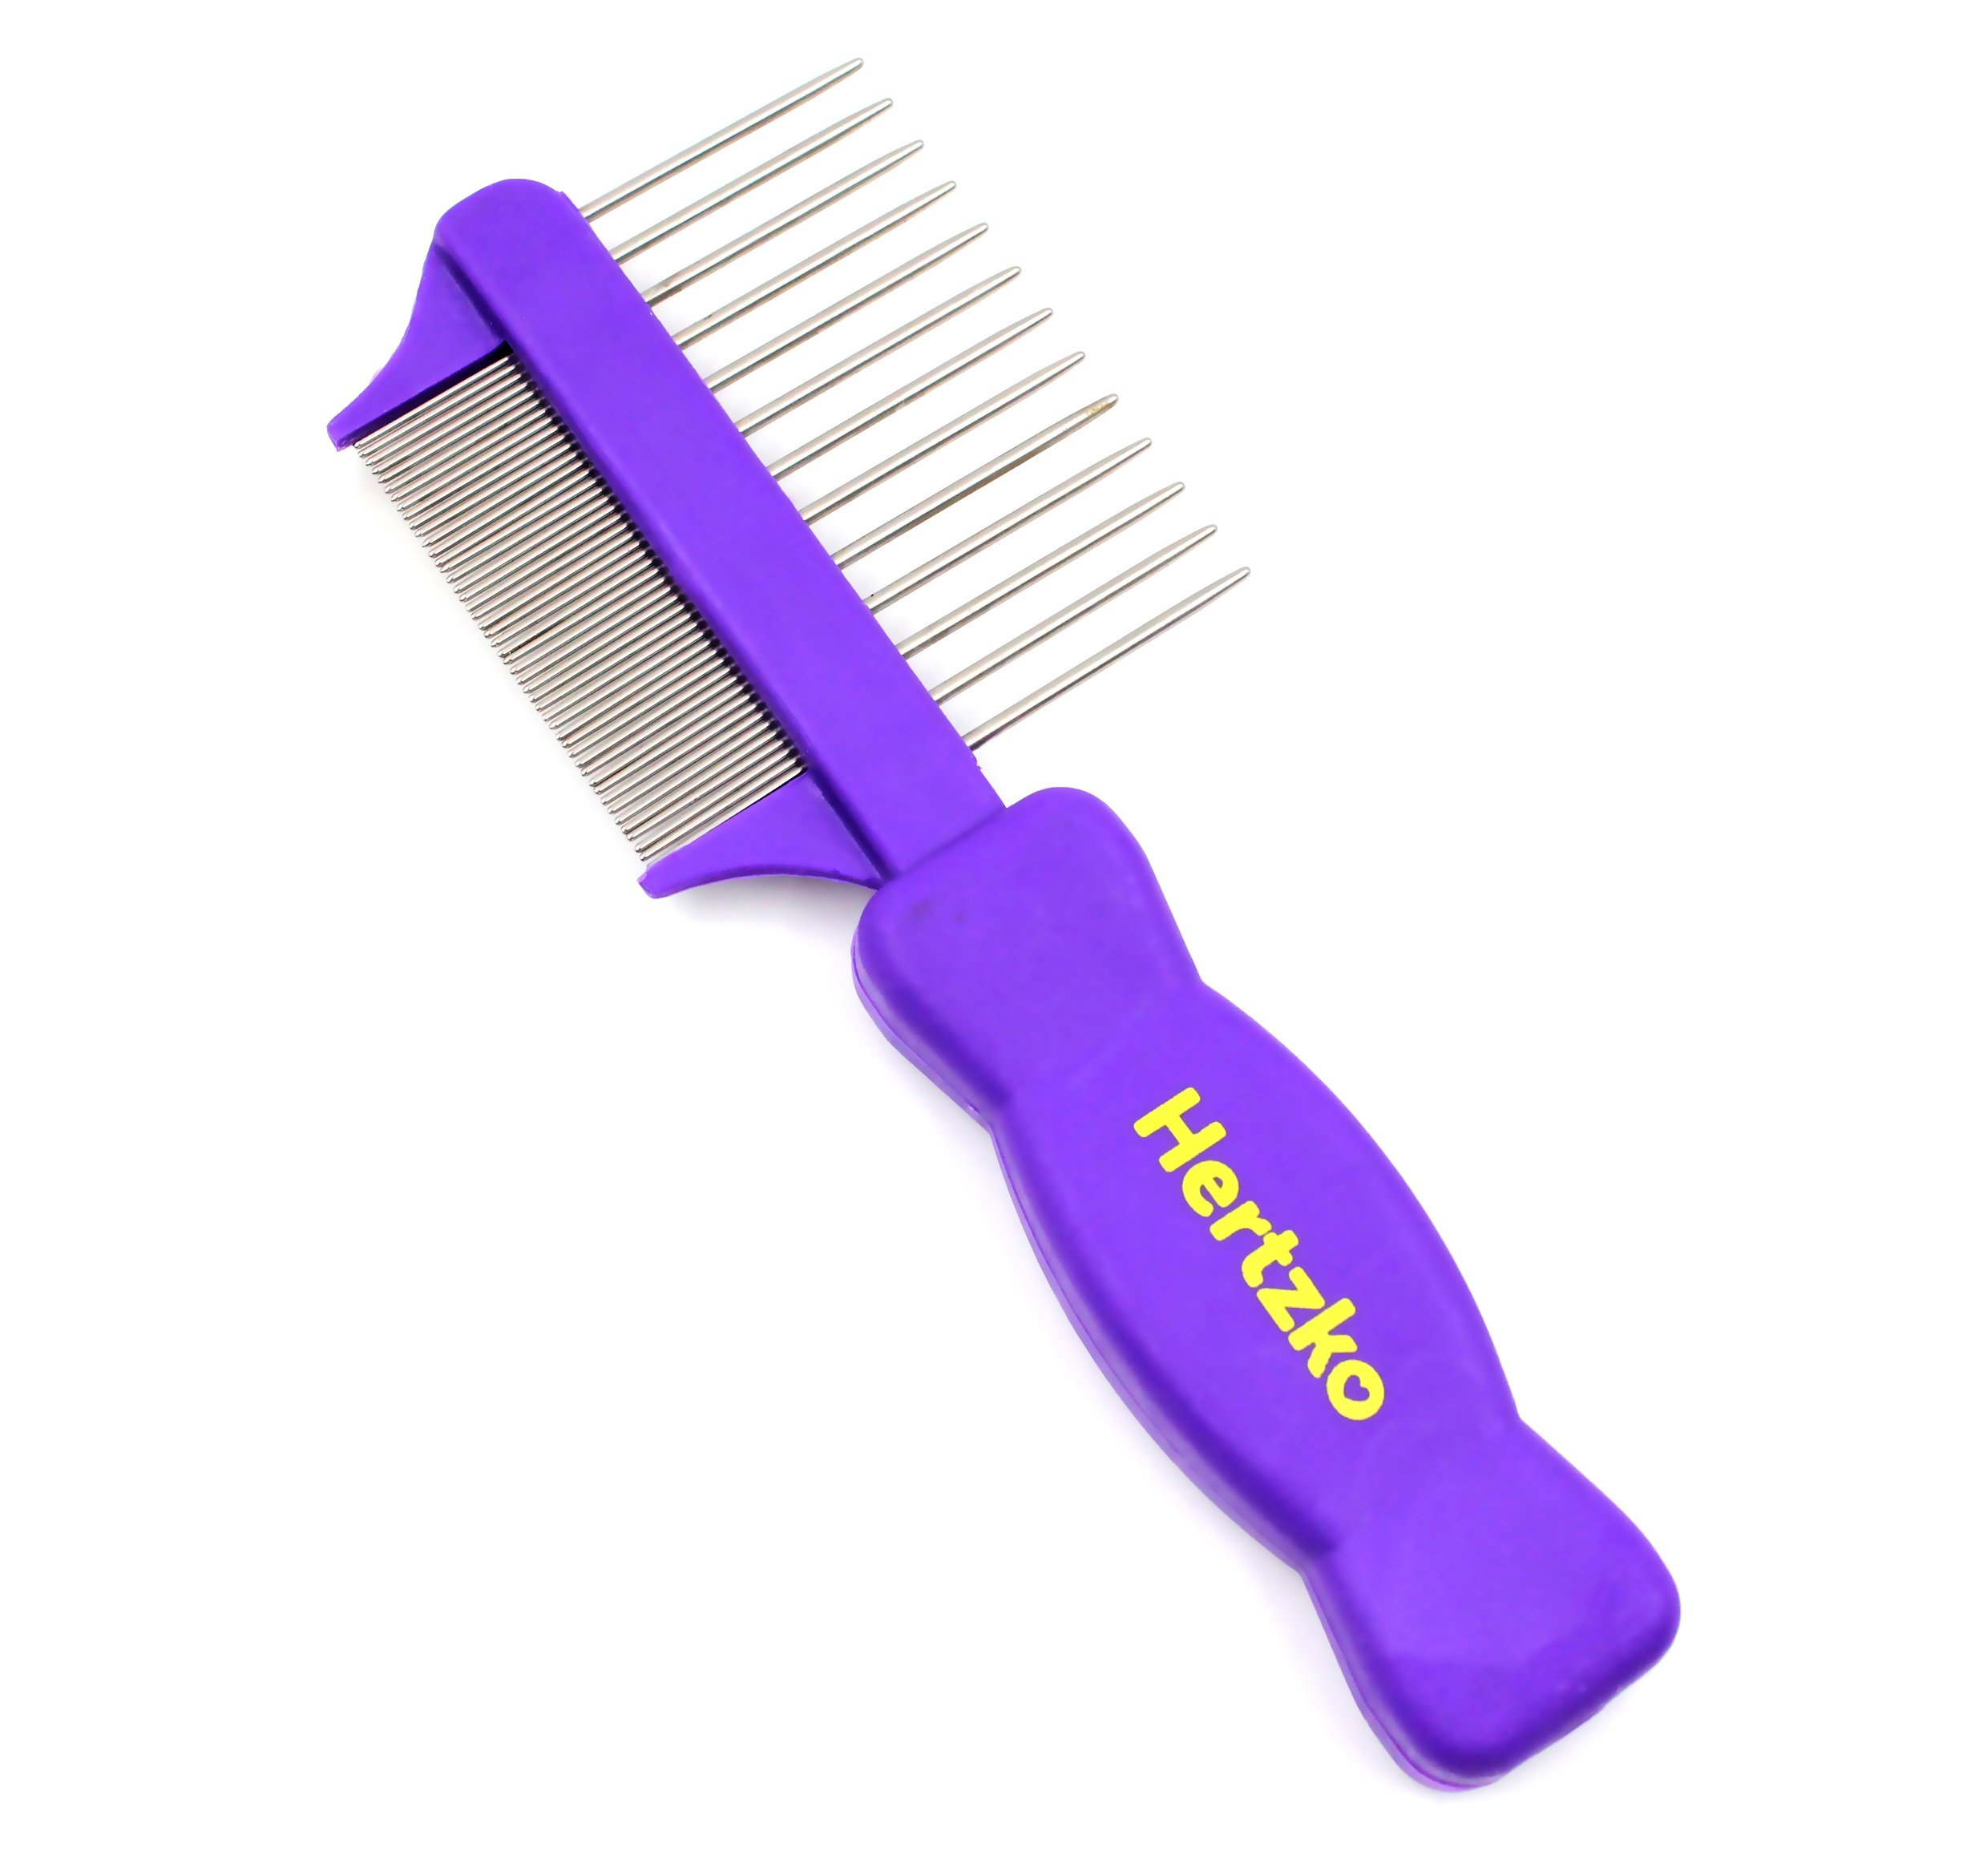 Hertzko Double Sided Flea Comb by Densely Packed Pins Removes Fleas, Flea Eggs, and Debris, and the Wider Spaced Pins Detangles and Loosens Dead Undercoat - Suitable For Dogs And Cats